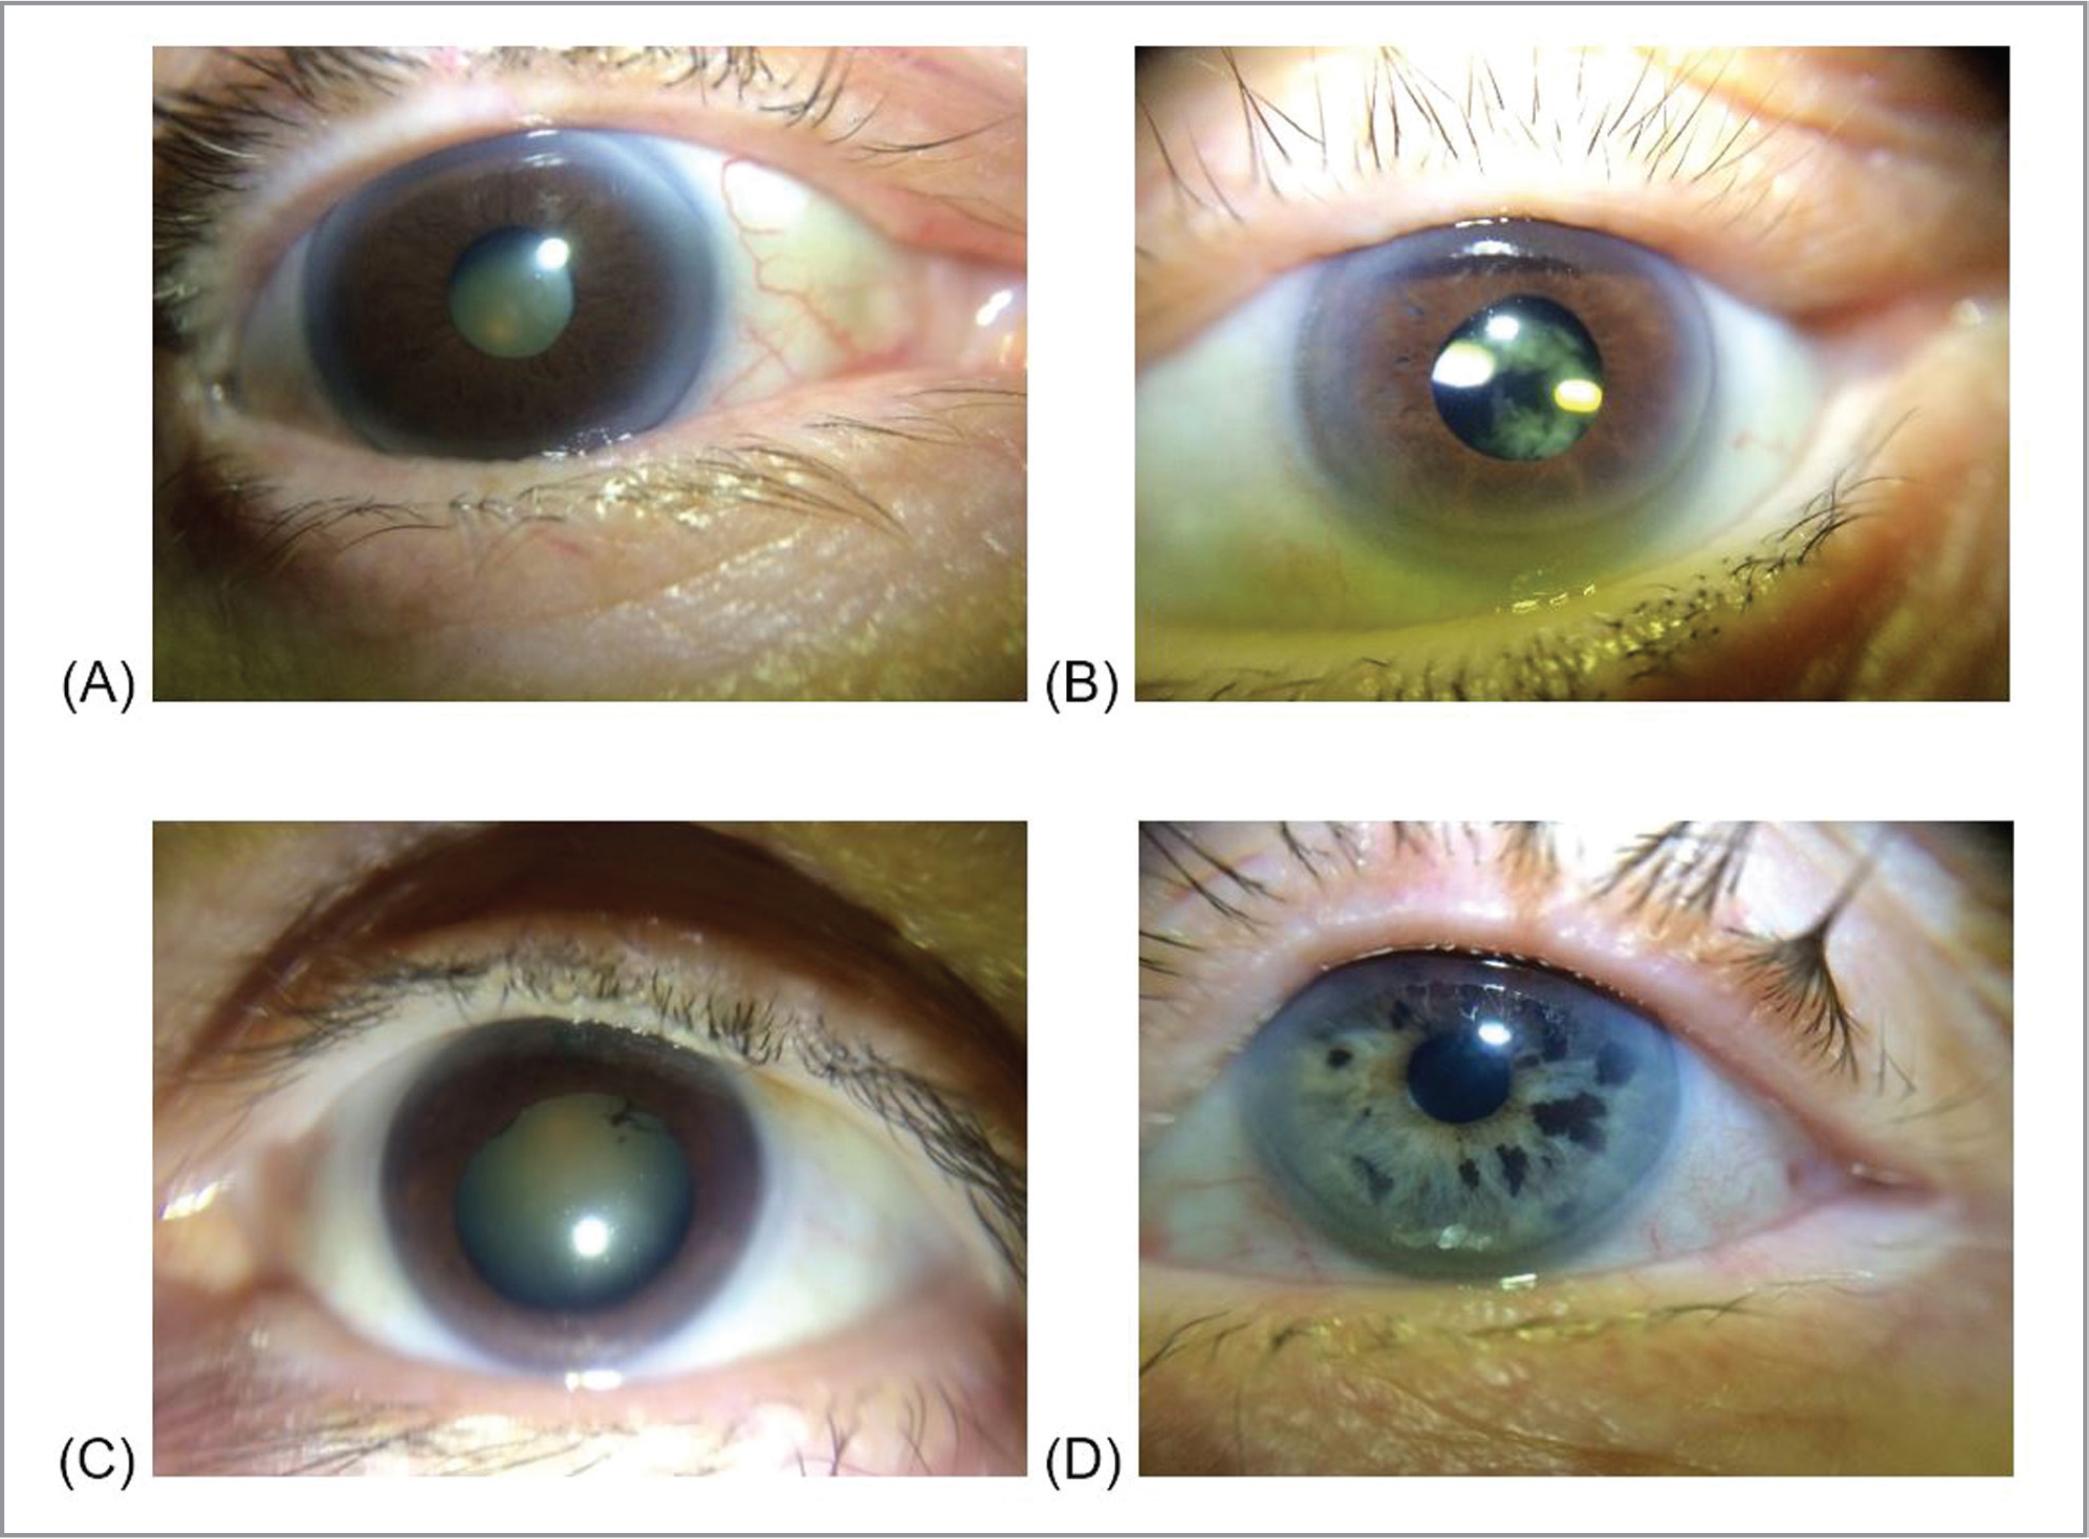 Example anterior segment photographs taken with the Paxos Scope showing (A) cataract, (B) pseudophakia with posterior capsular opacification, (C) cataract with posterior synechiae, and (D) suspicious iris nevi.